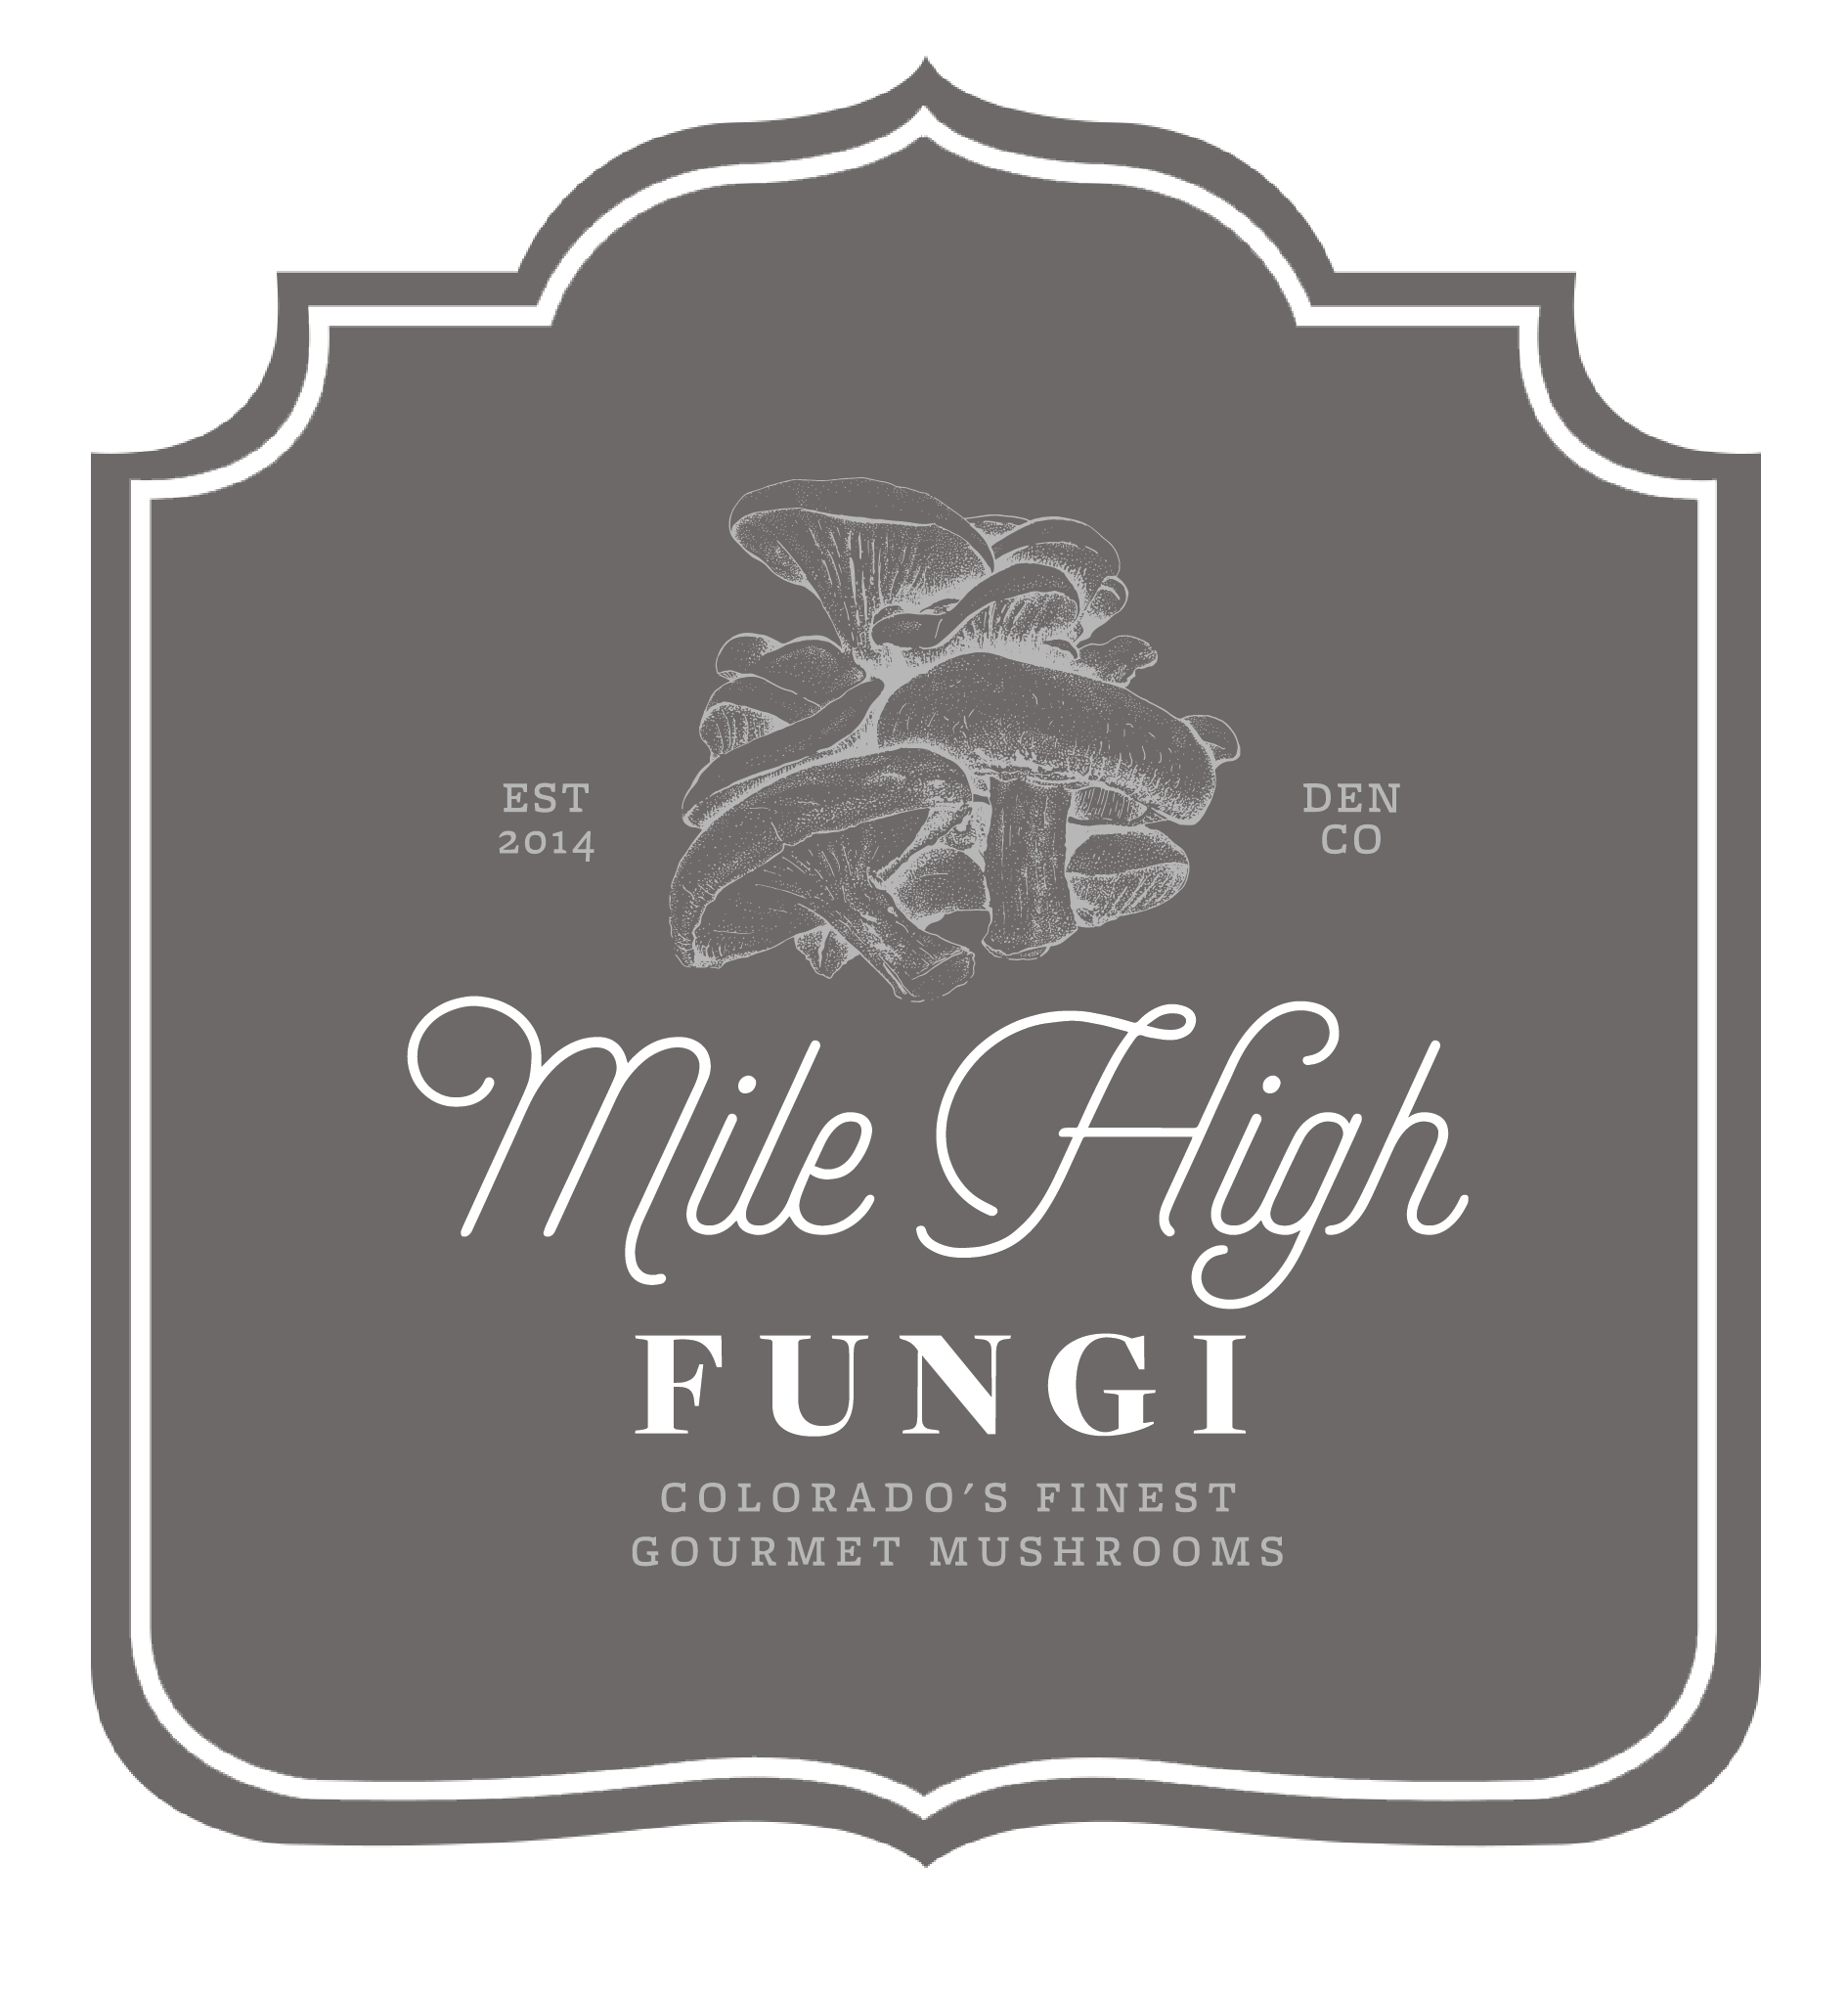 Mile High Fungi | Colorado's Finest Gourmet Mushrooms